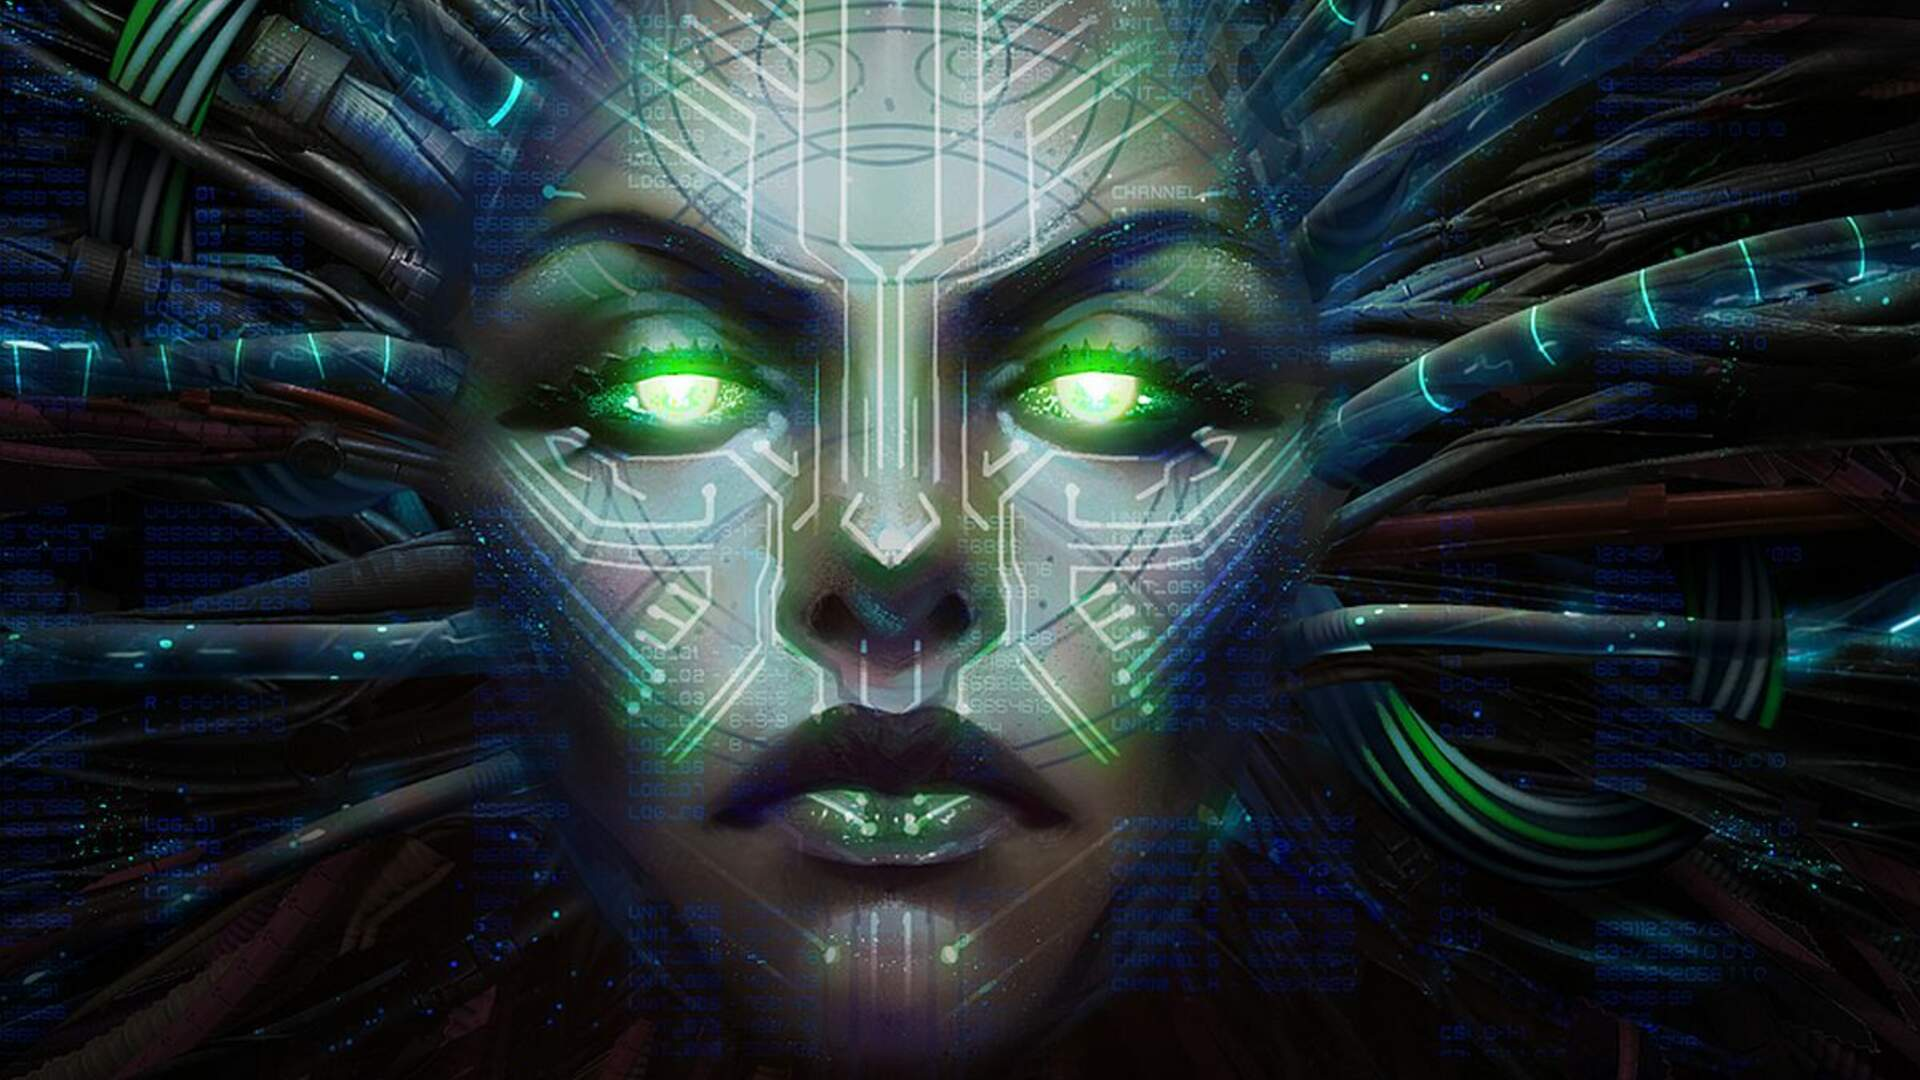 System Shock 3 Trailer Reminds You You're Nothing but a Pathetic Hacker